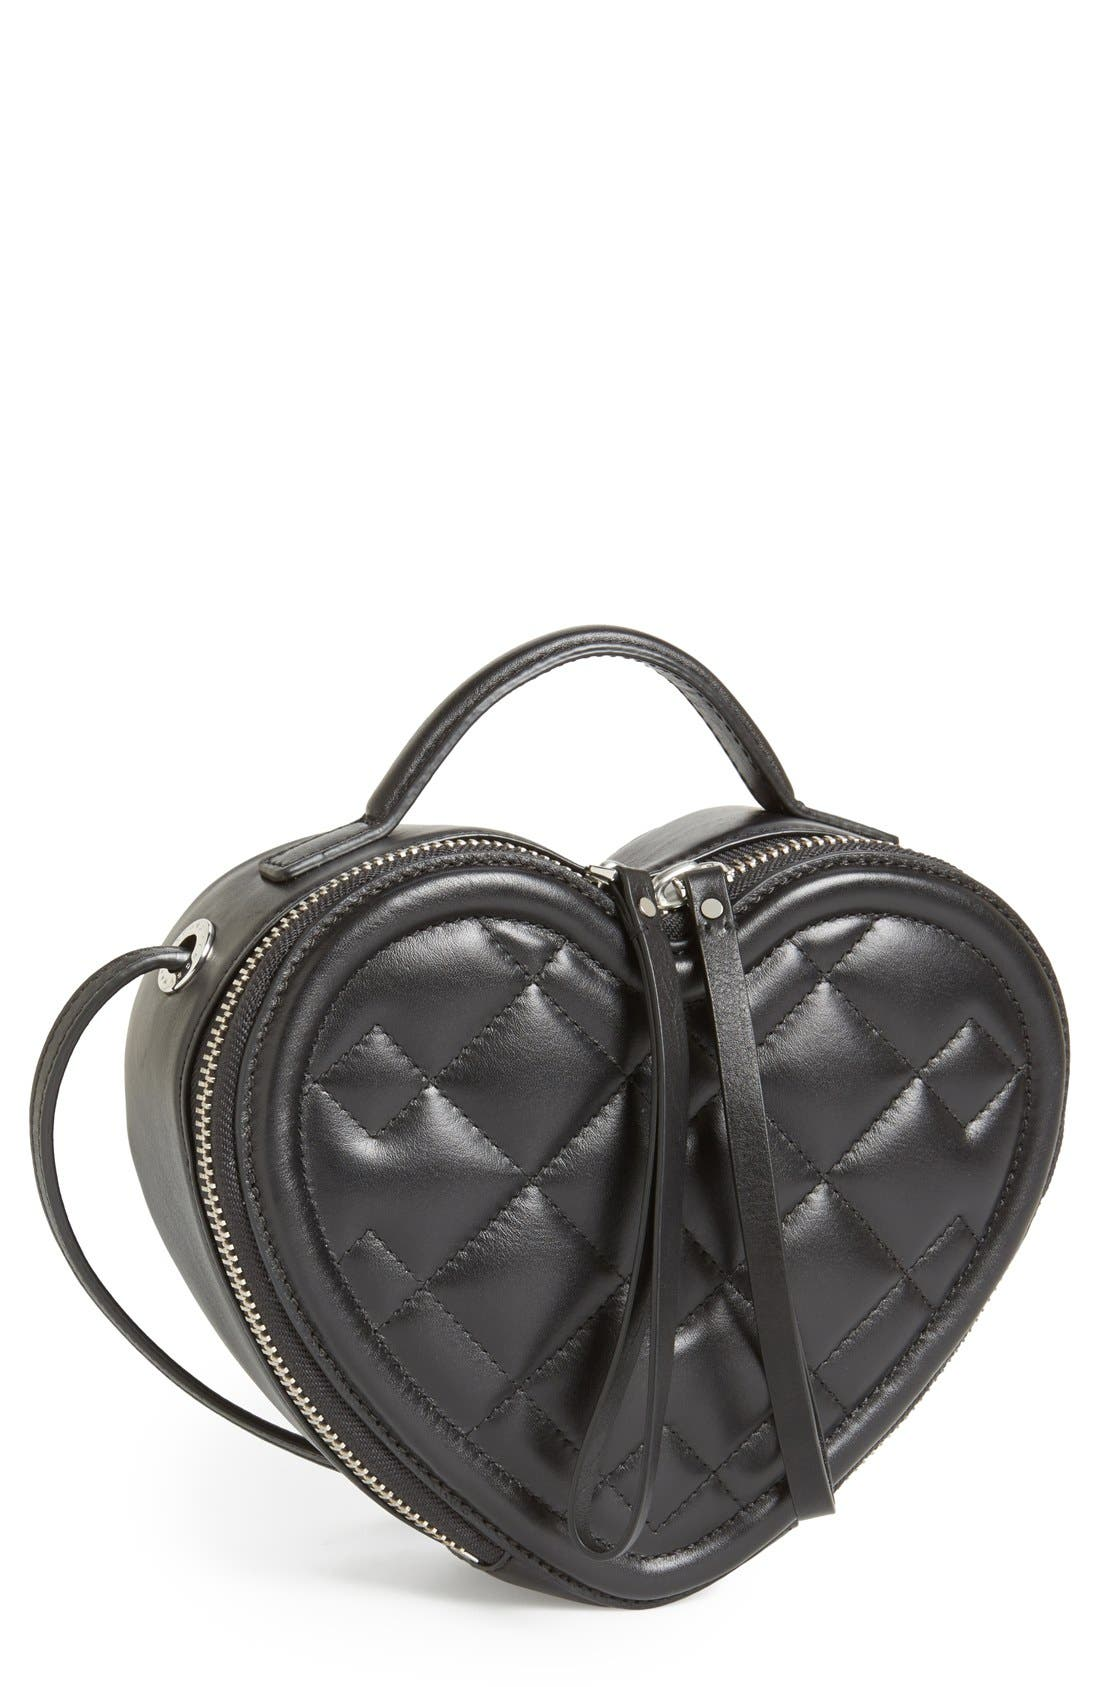 Main Image - MARC BY MARC JACOBS 'Heart to Heart' Crossbody